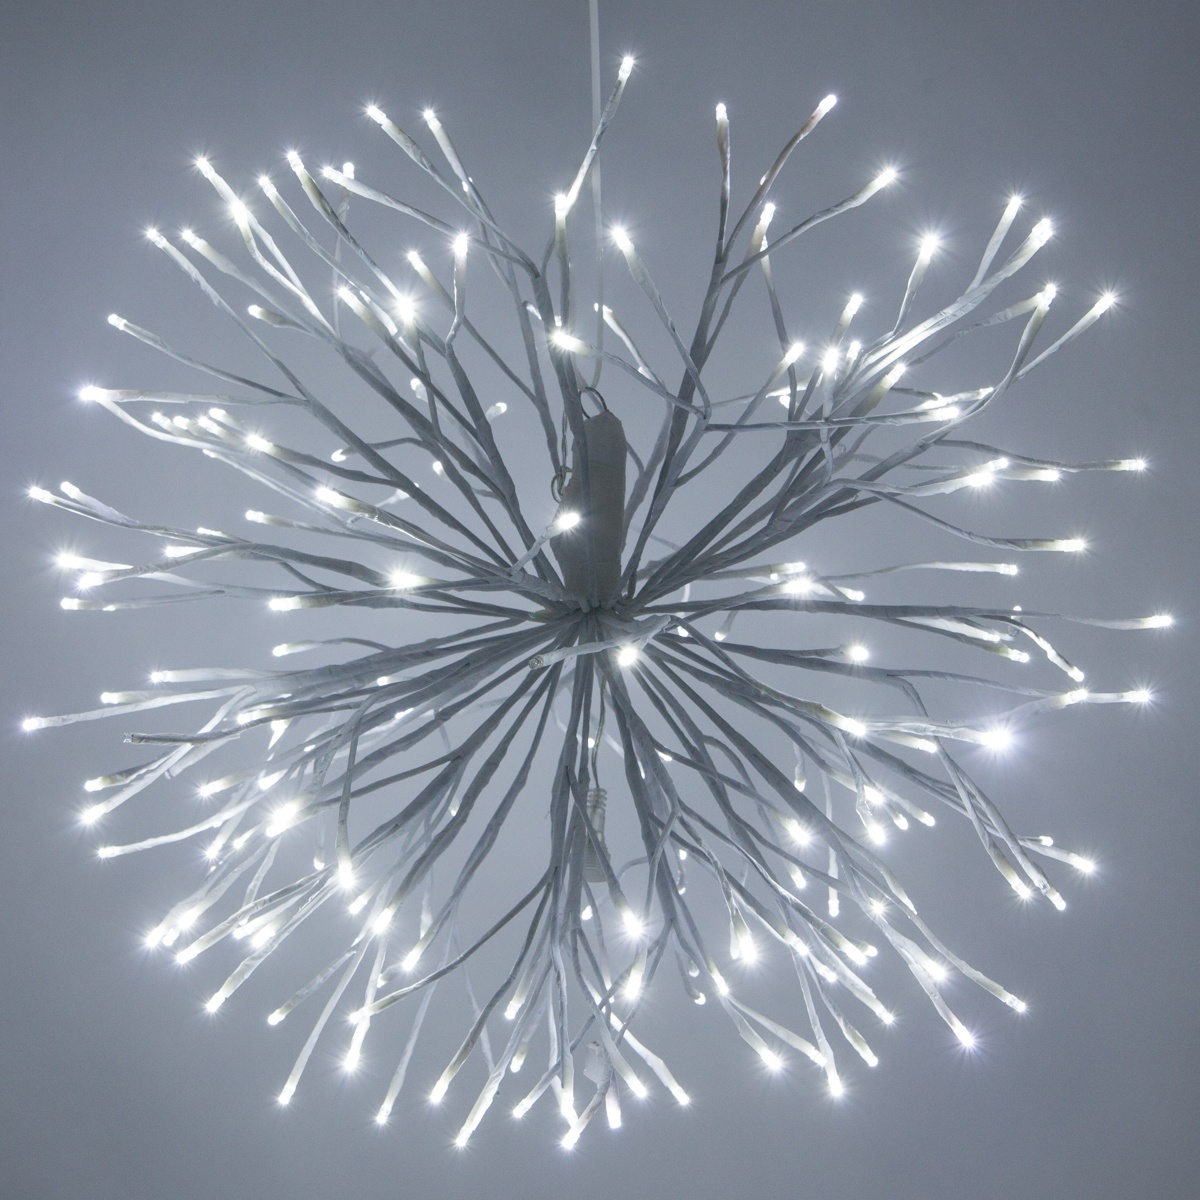 Lighting Warehouse Branches: White Starburst Lighted Branches With Cool White LED